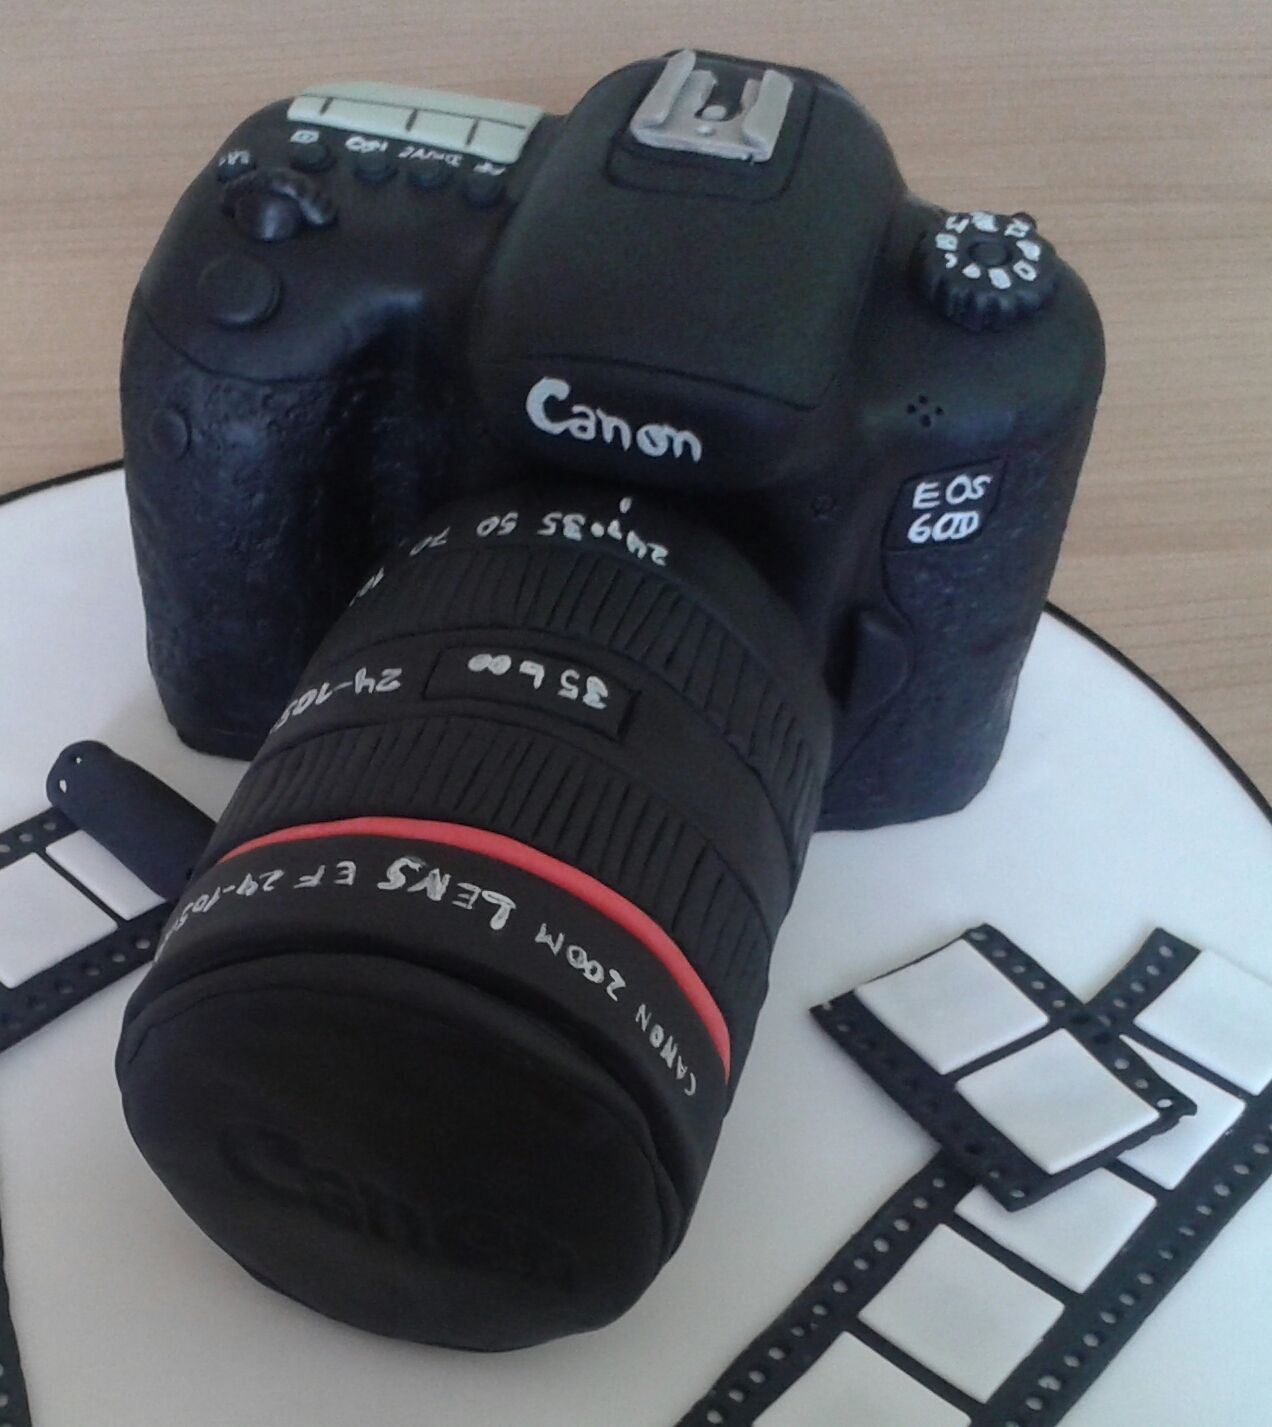 geburtstag erwachsene canon kamera camera cake kamera torte pinterest kuchen fondant. Black Bedroom Furniture Sets. Home Design Ideas